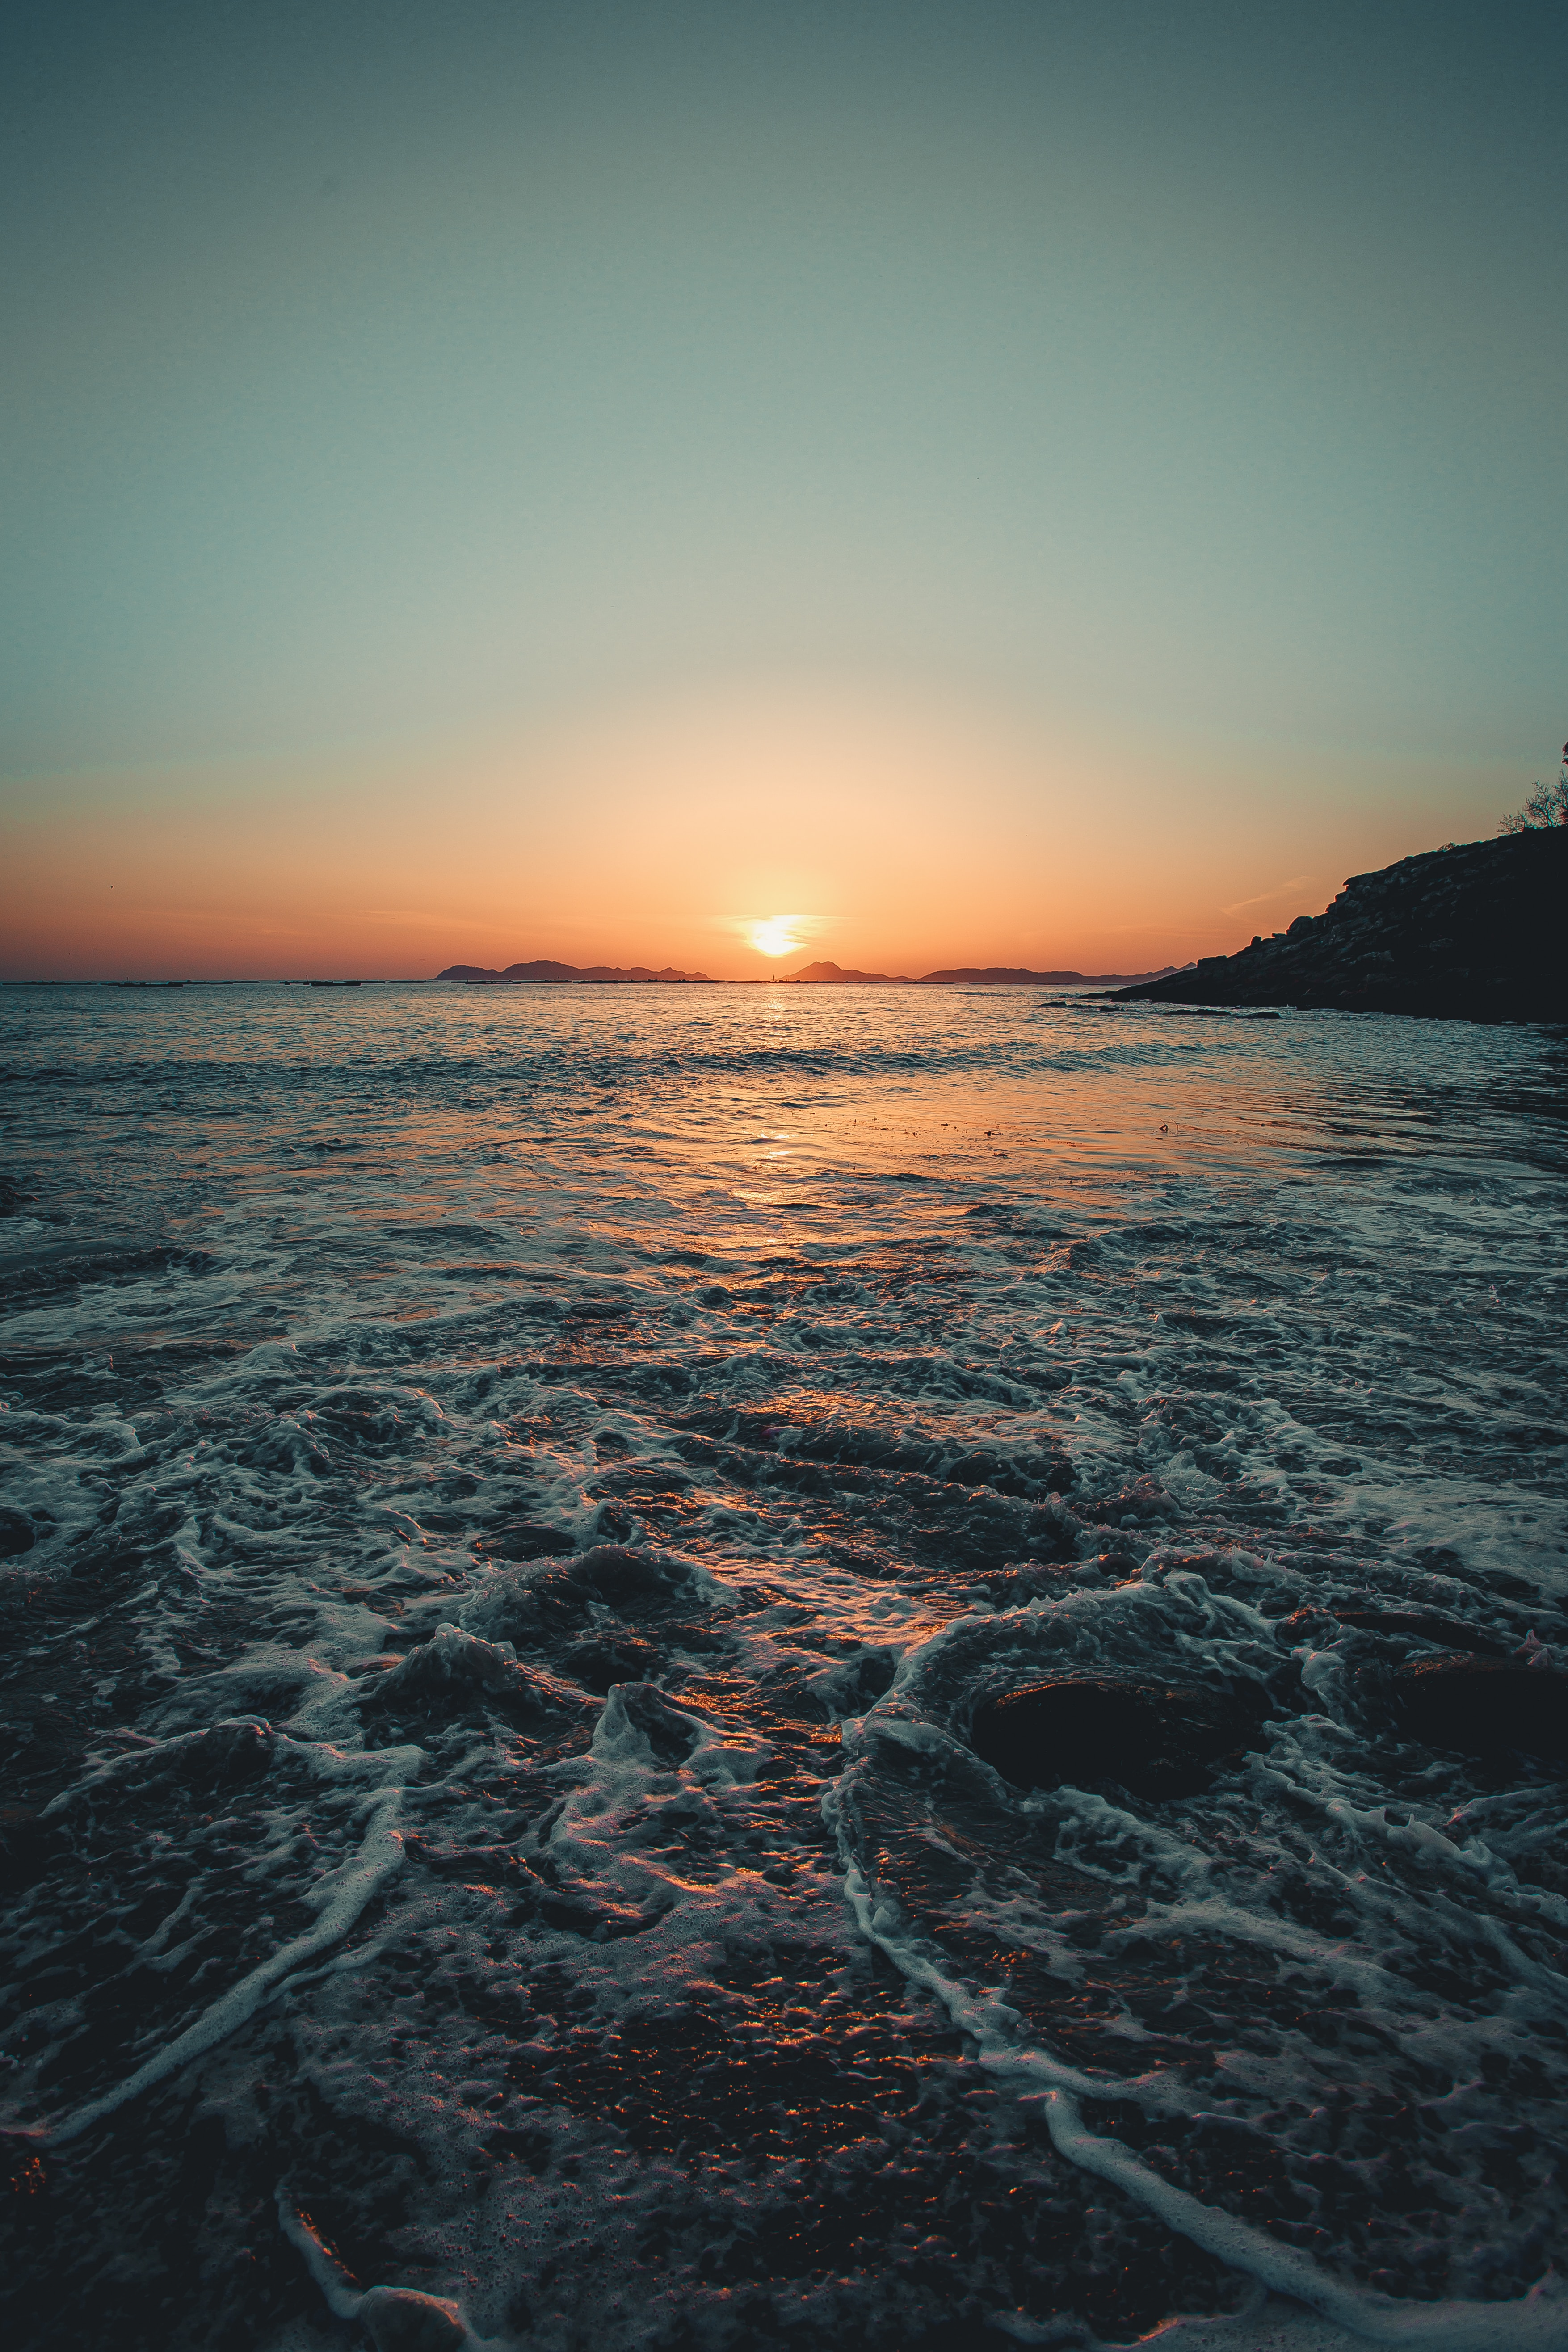 114309 download wallpaper Nature, Sunset, Sea, Dusk, Twilight, Waves screensavers and pictures for free